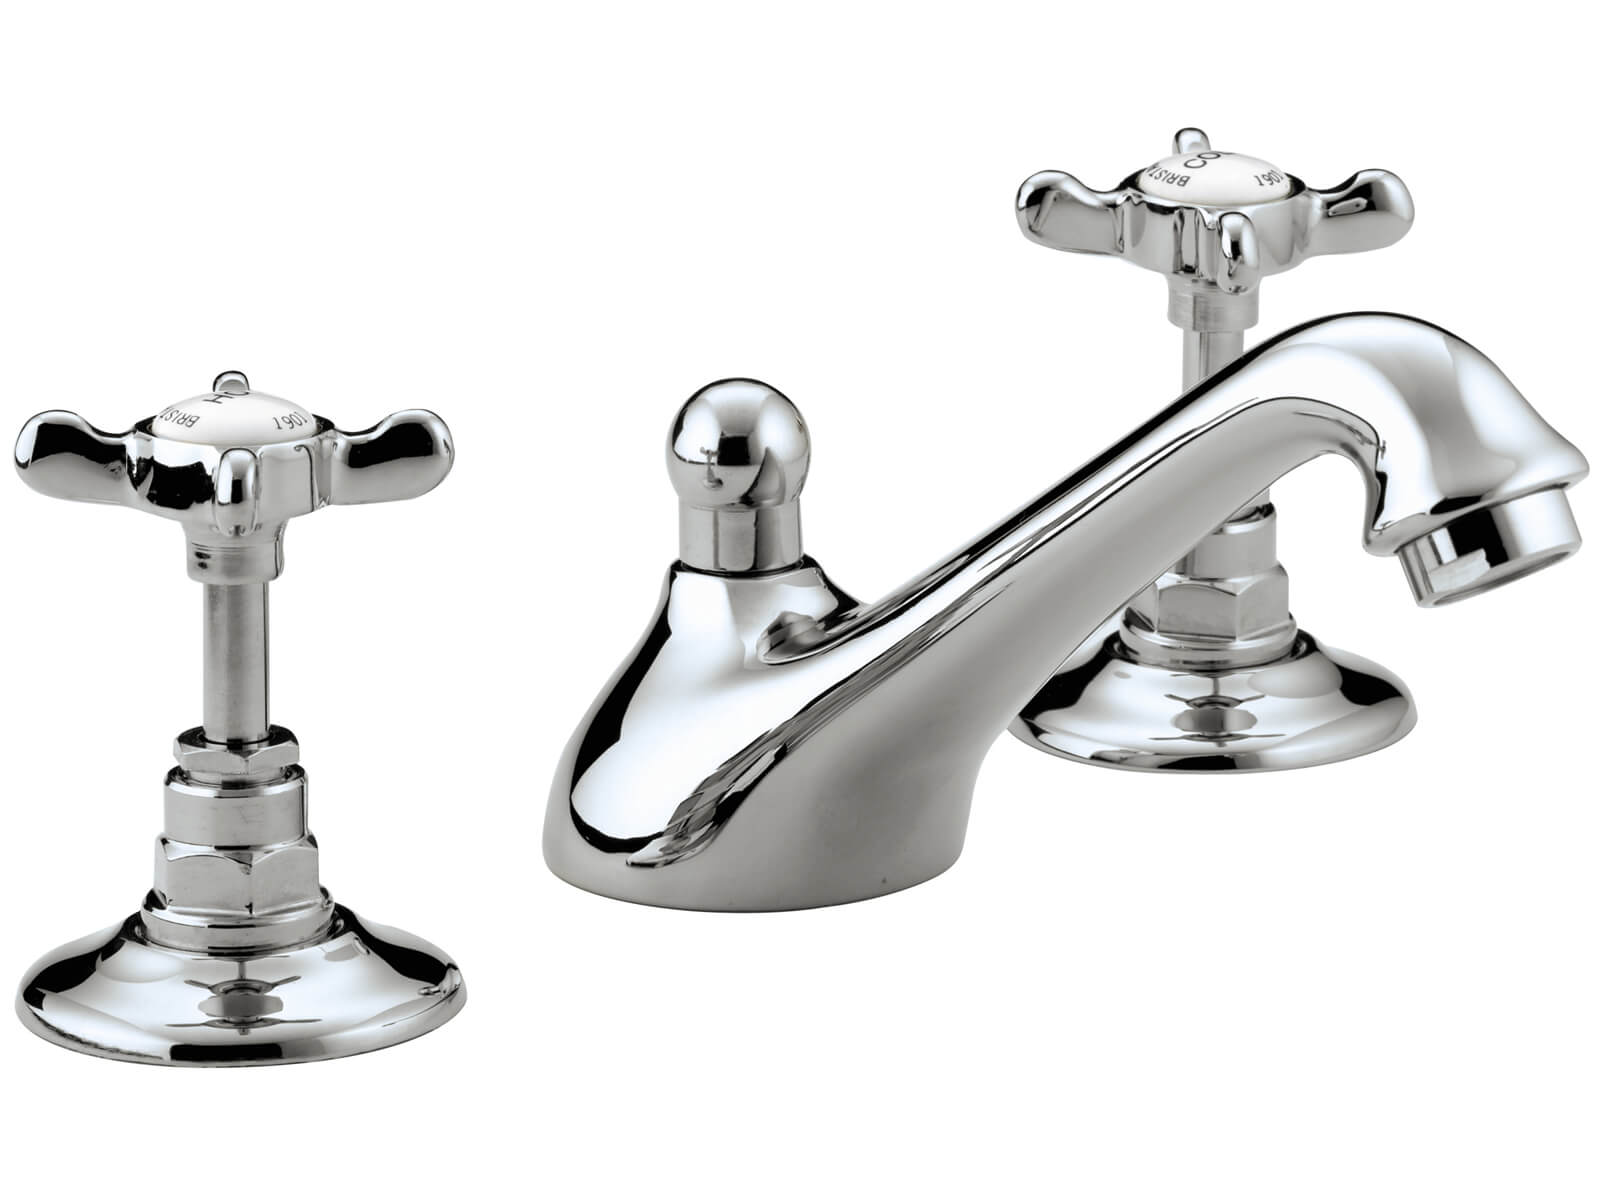 Bristan 1901 Chrome 3 Hole Basin Mixer Tap With Pop Up Waste